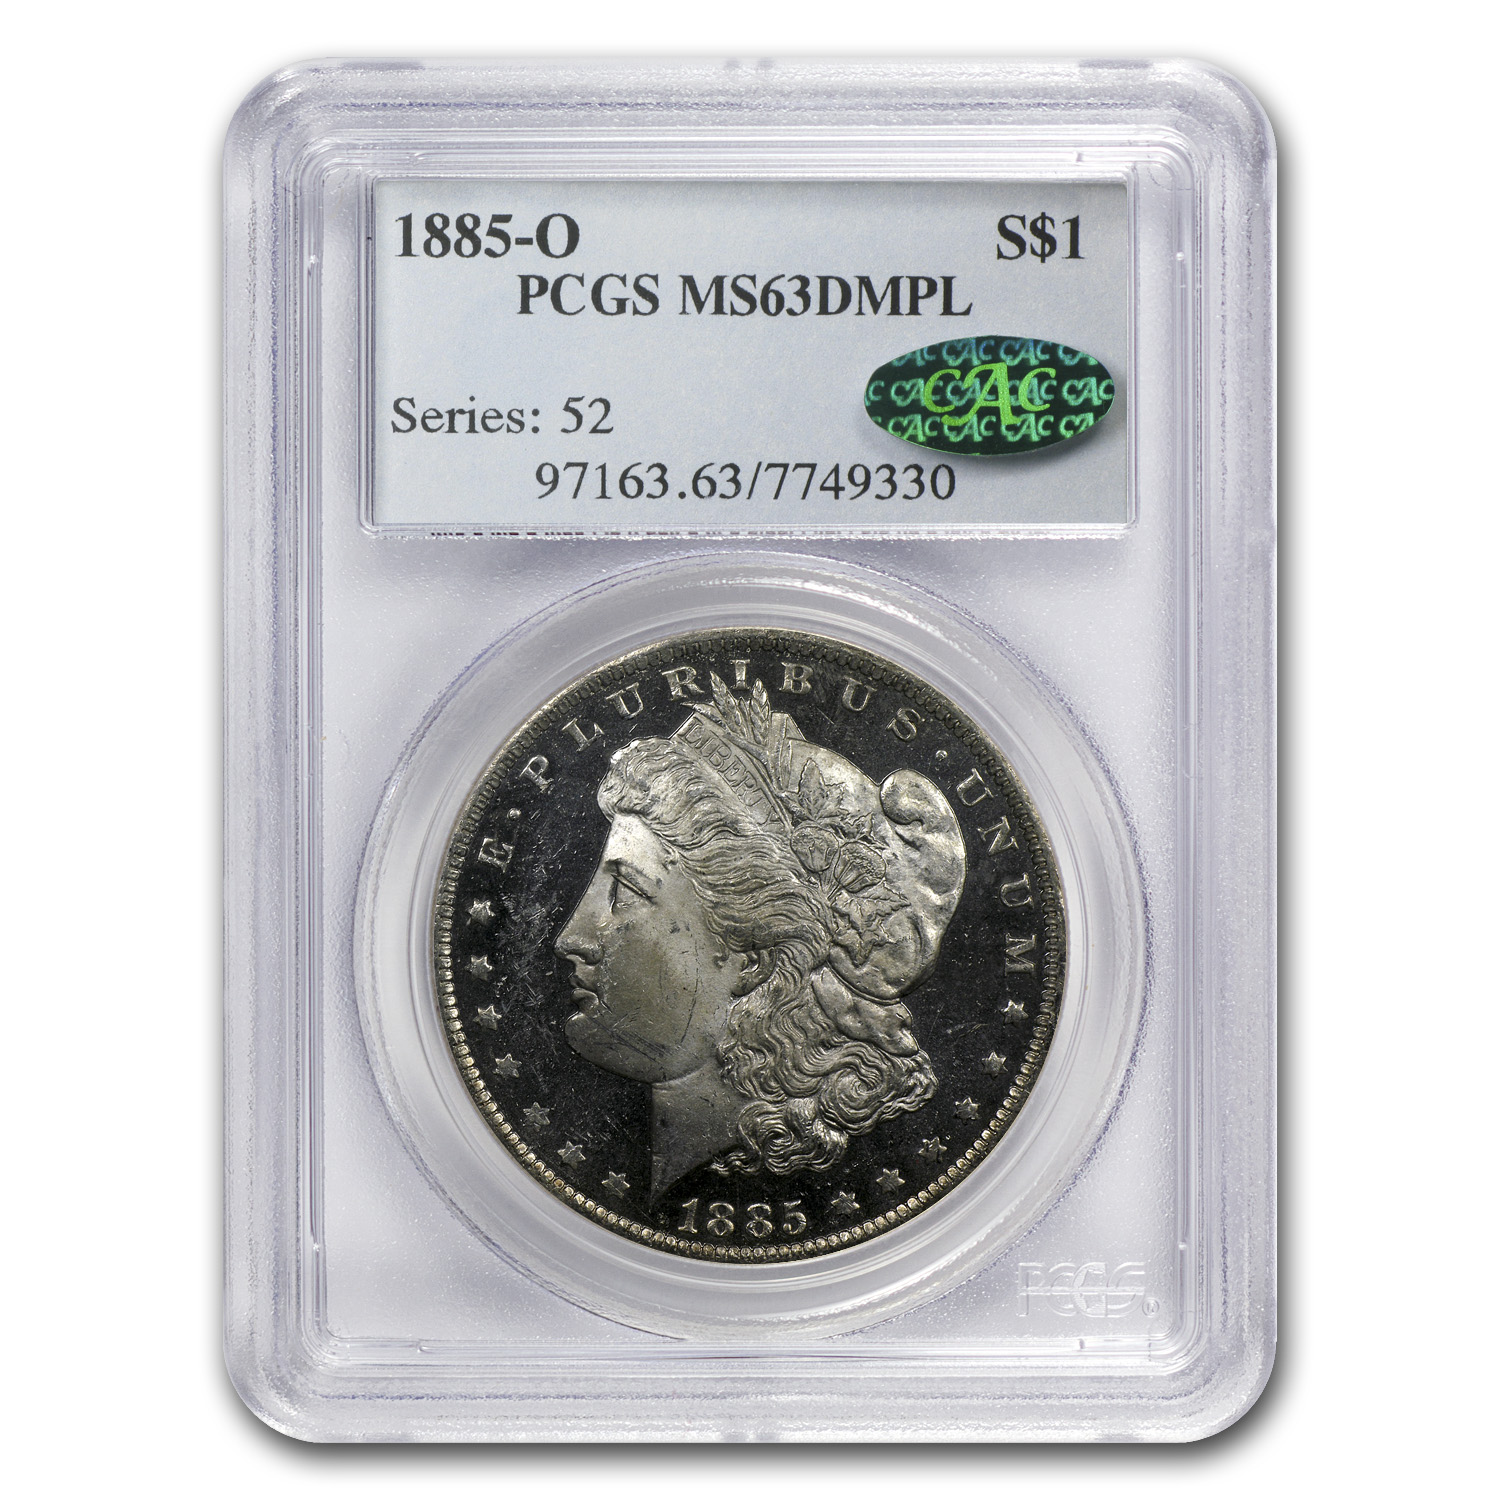 1885-O Morgan Dollar - MS-63 DMPL Deep Mirror Proof Like PCGS CAC